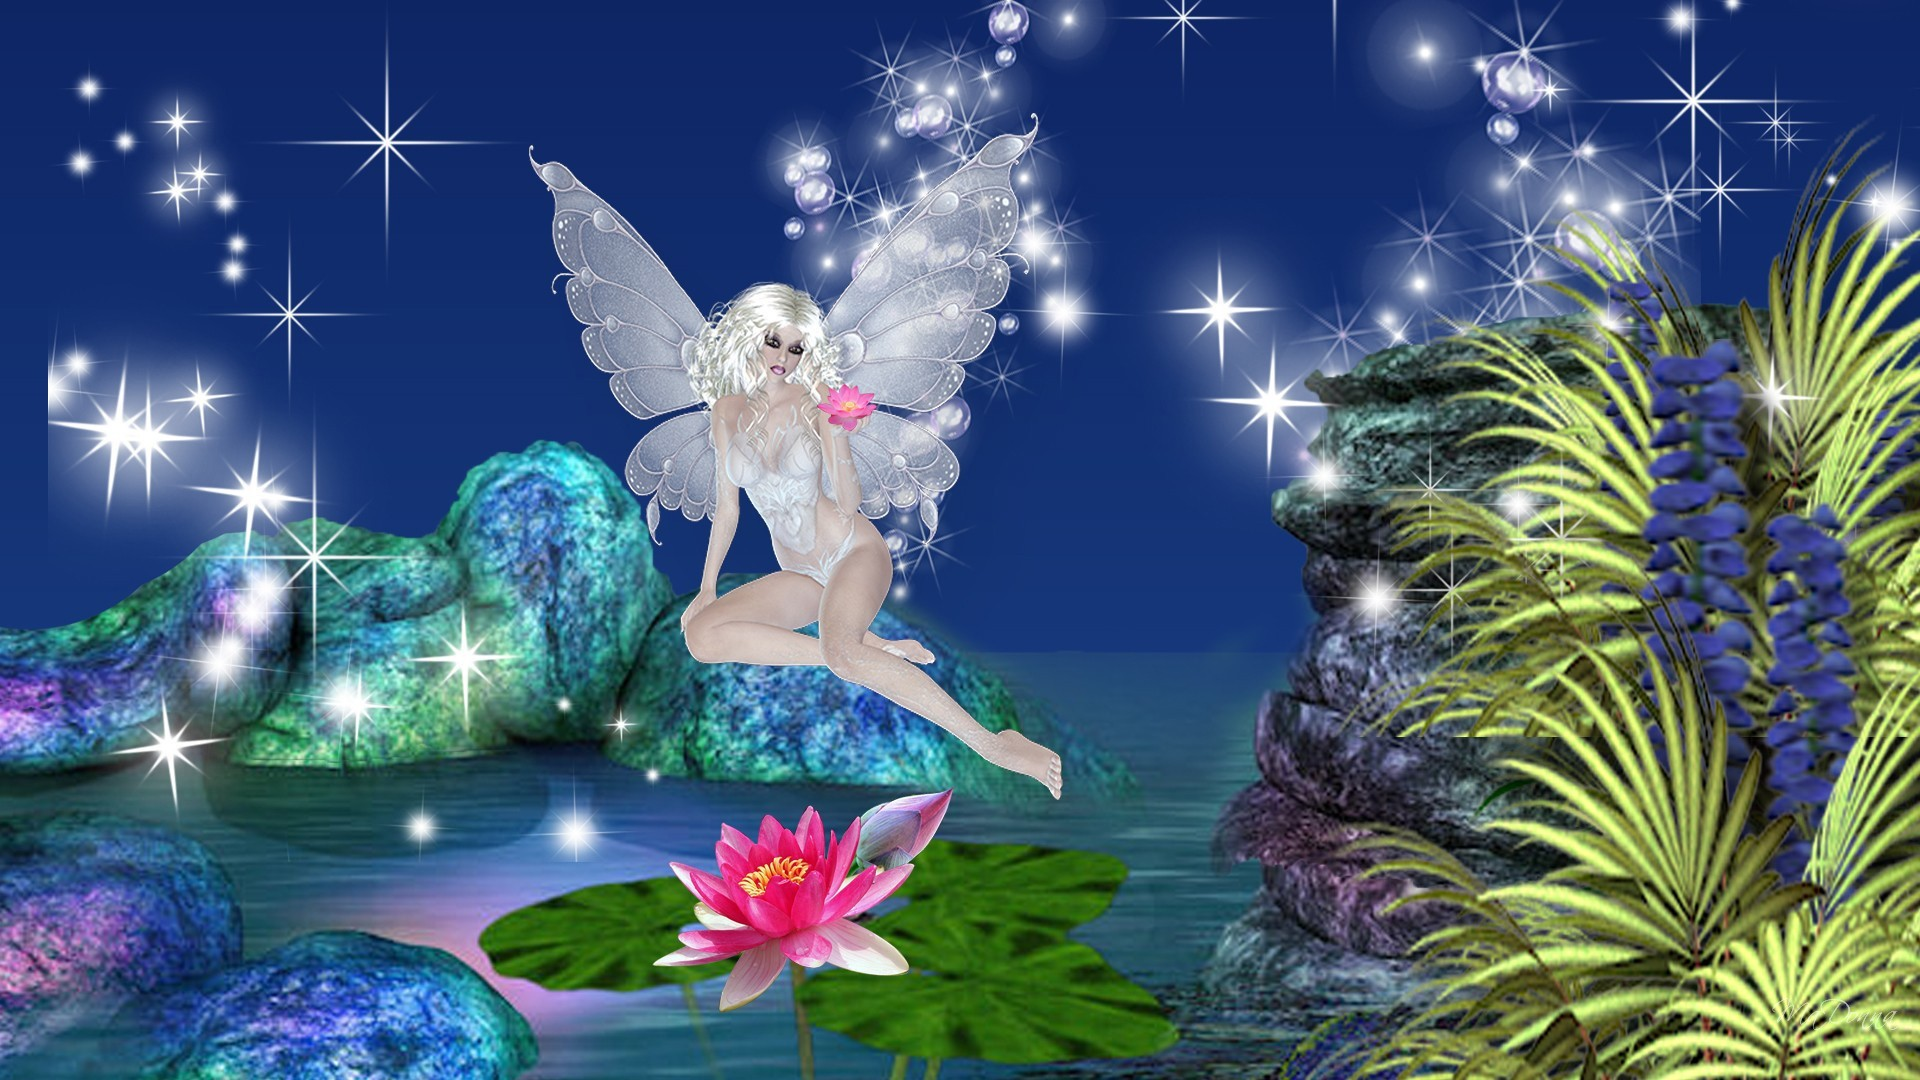 1920x1080 RMD:489 HD Fairy Wallpapers - HD Wallpapers